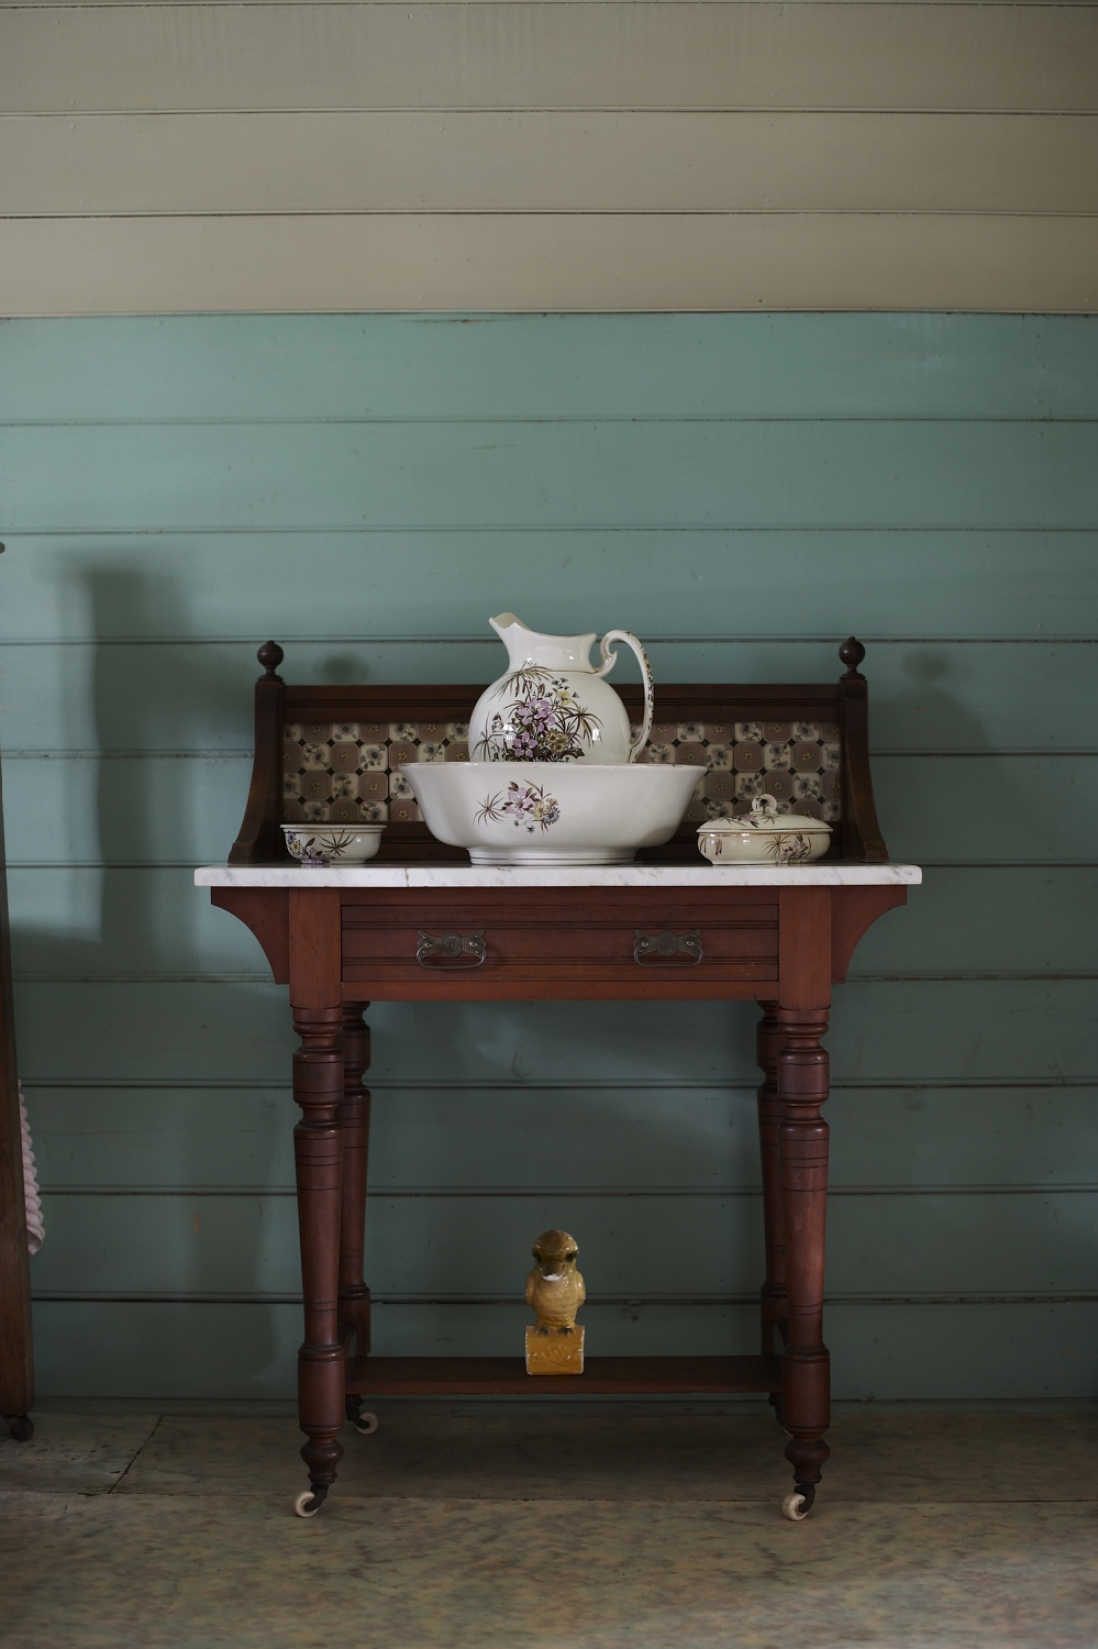 Wooden washstand with china jug, bowl and other items.